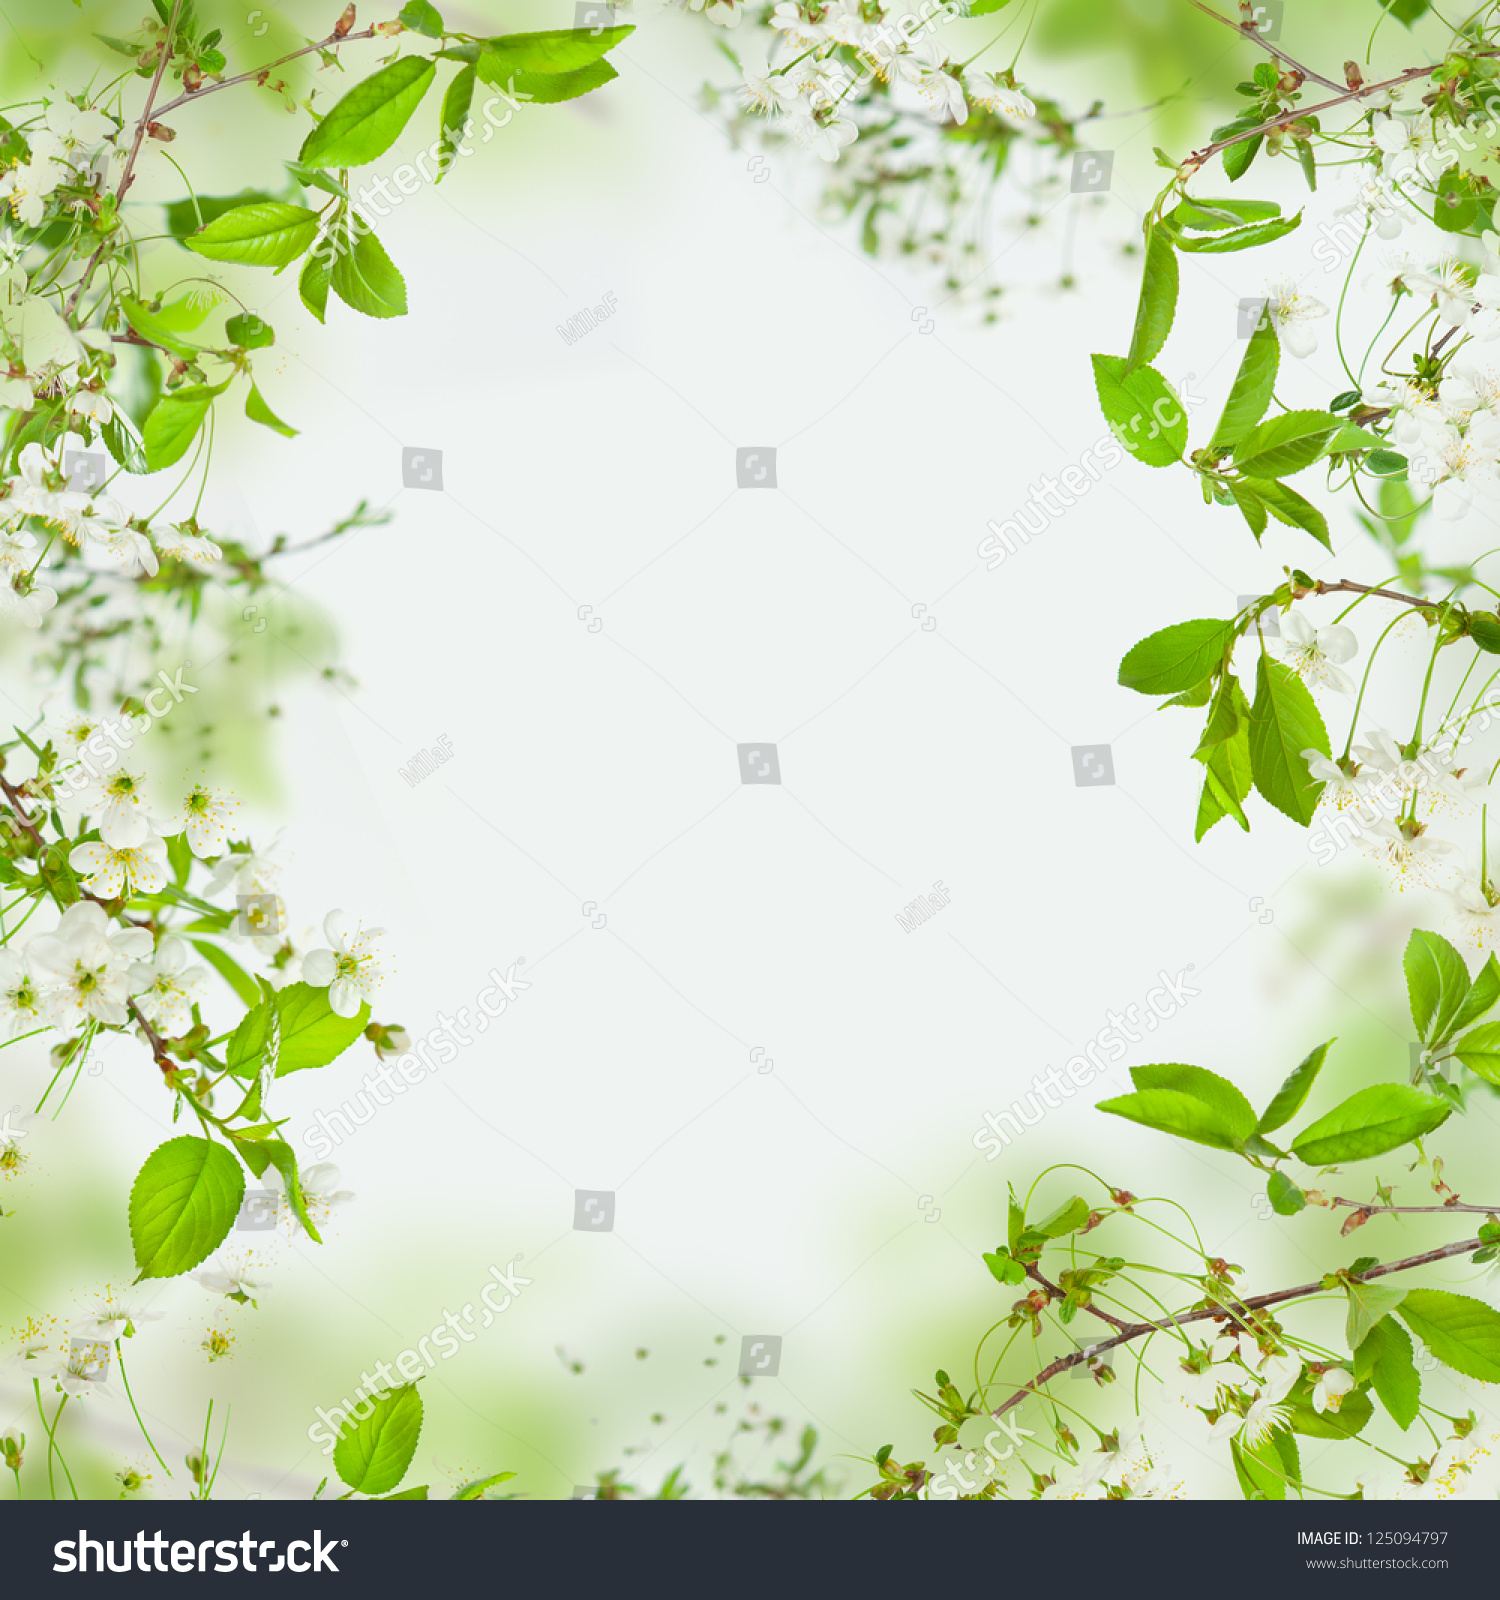 Spring Green Leaves And Flowers Background With Plants: Spring Nature Background Frame Flowers Green Stock Photo